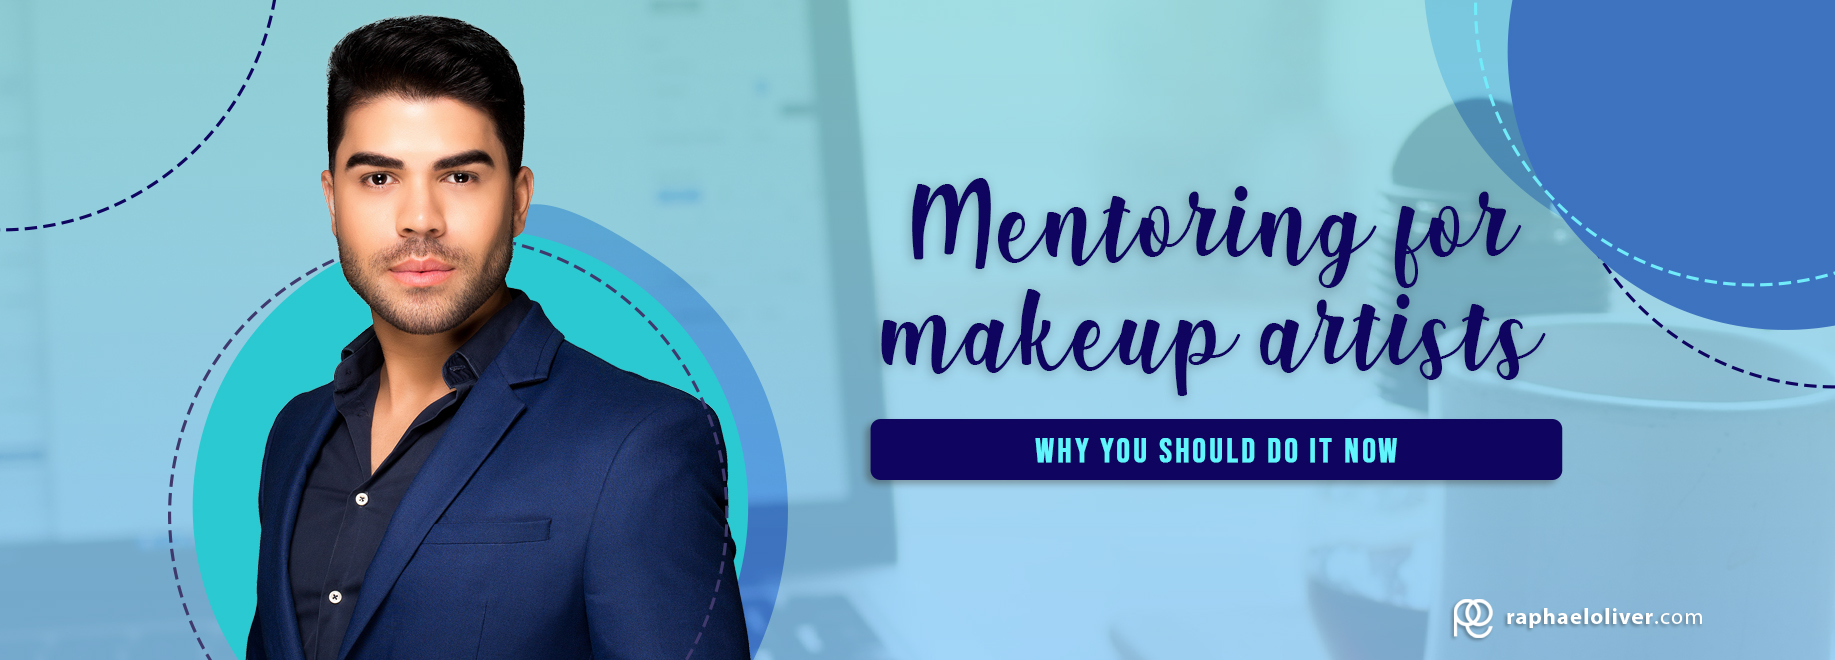 Mentoring for makeup artists: Why you should do it now